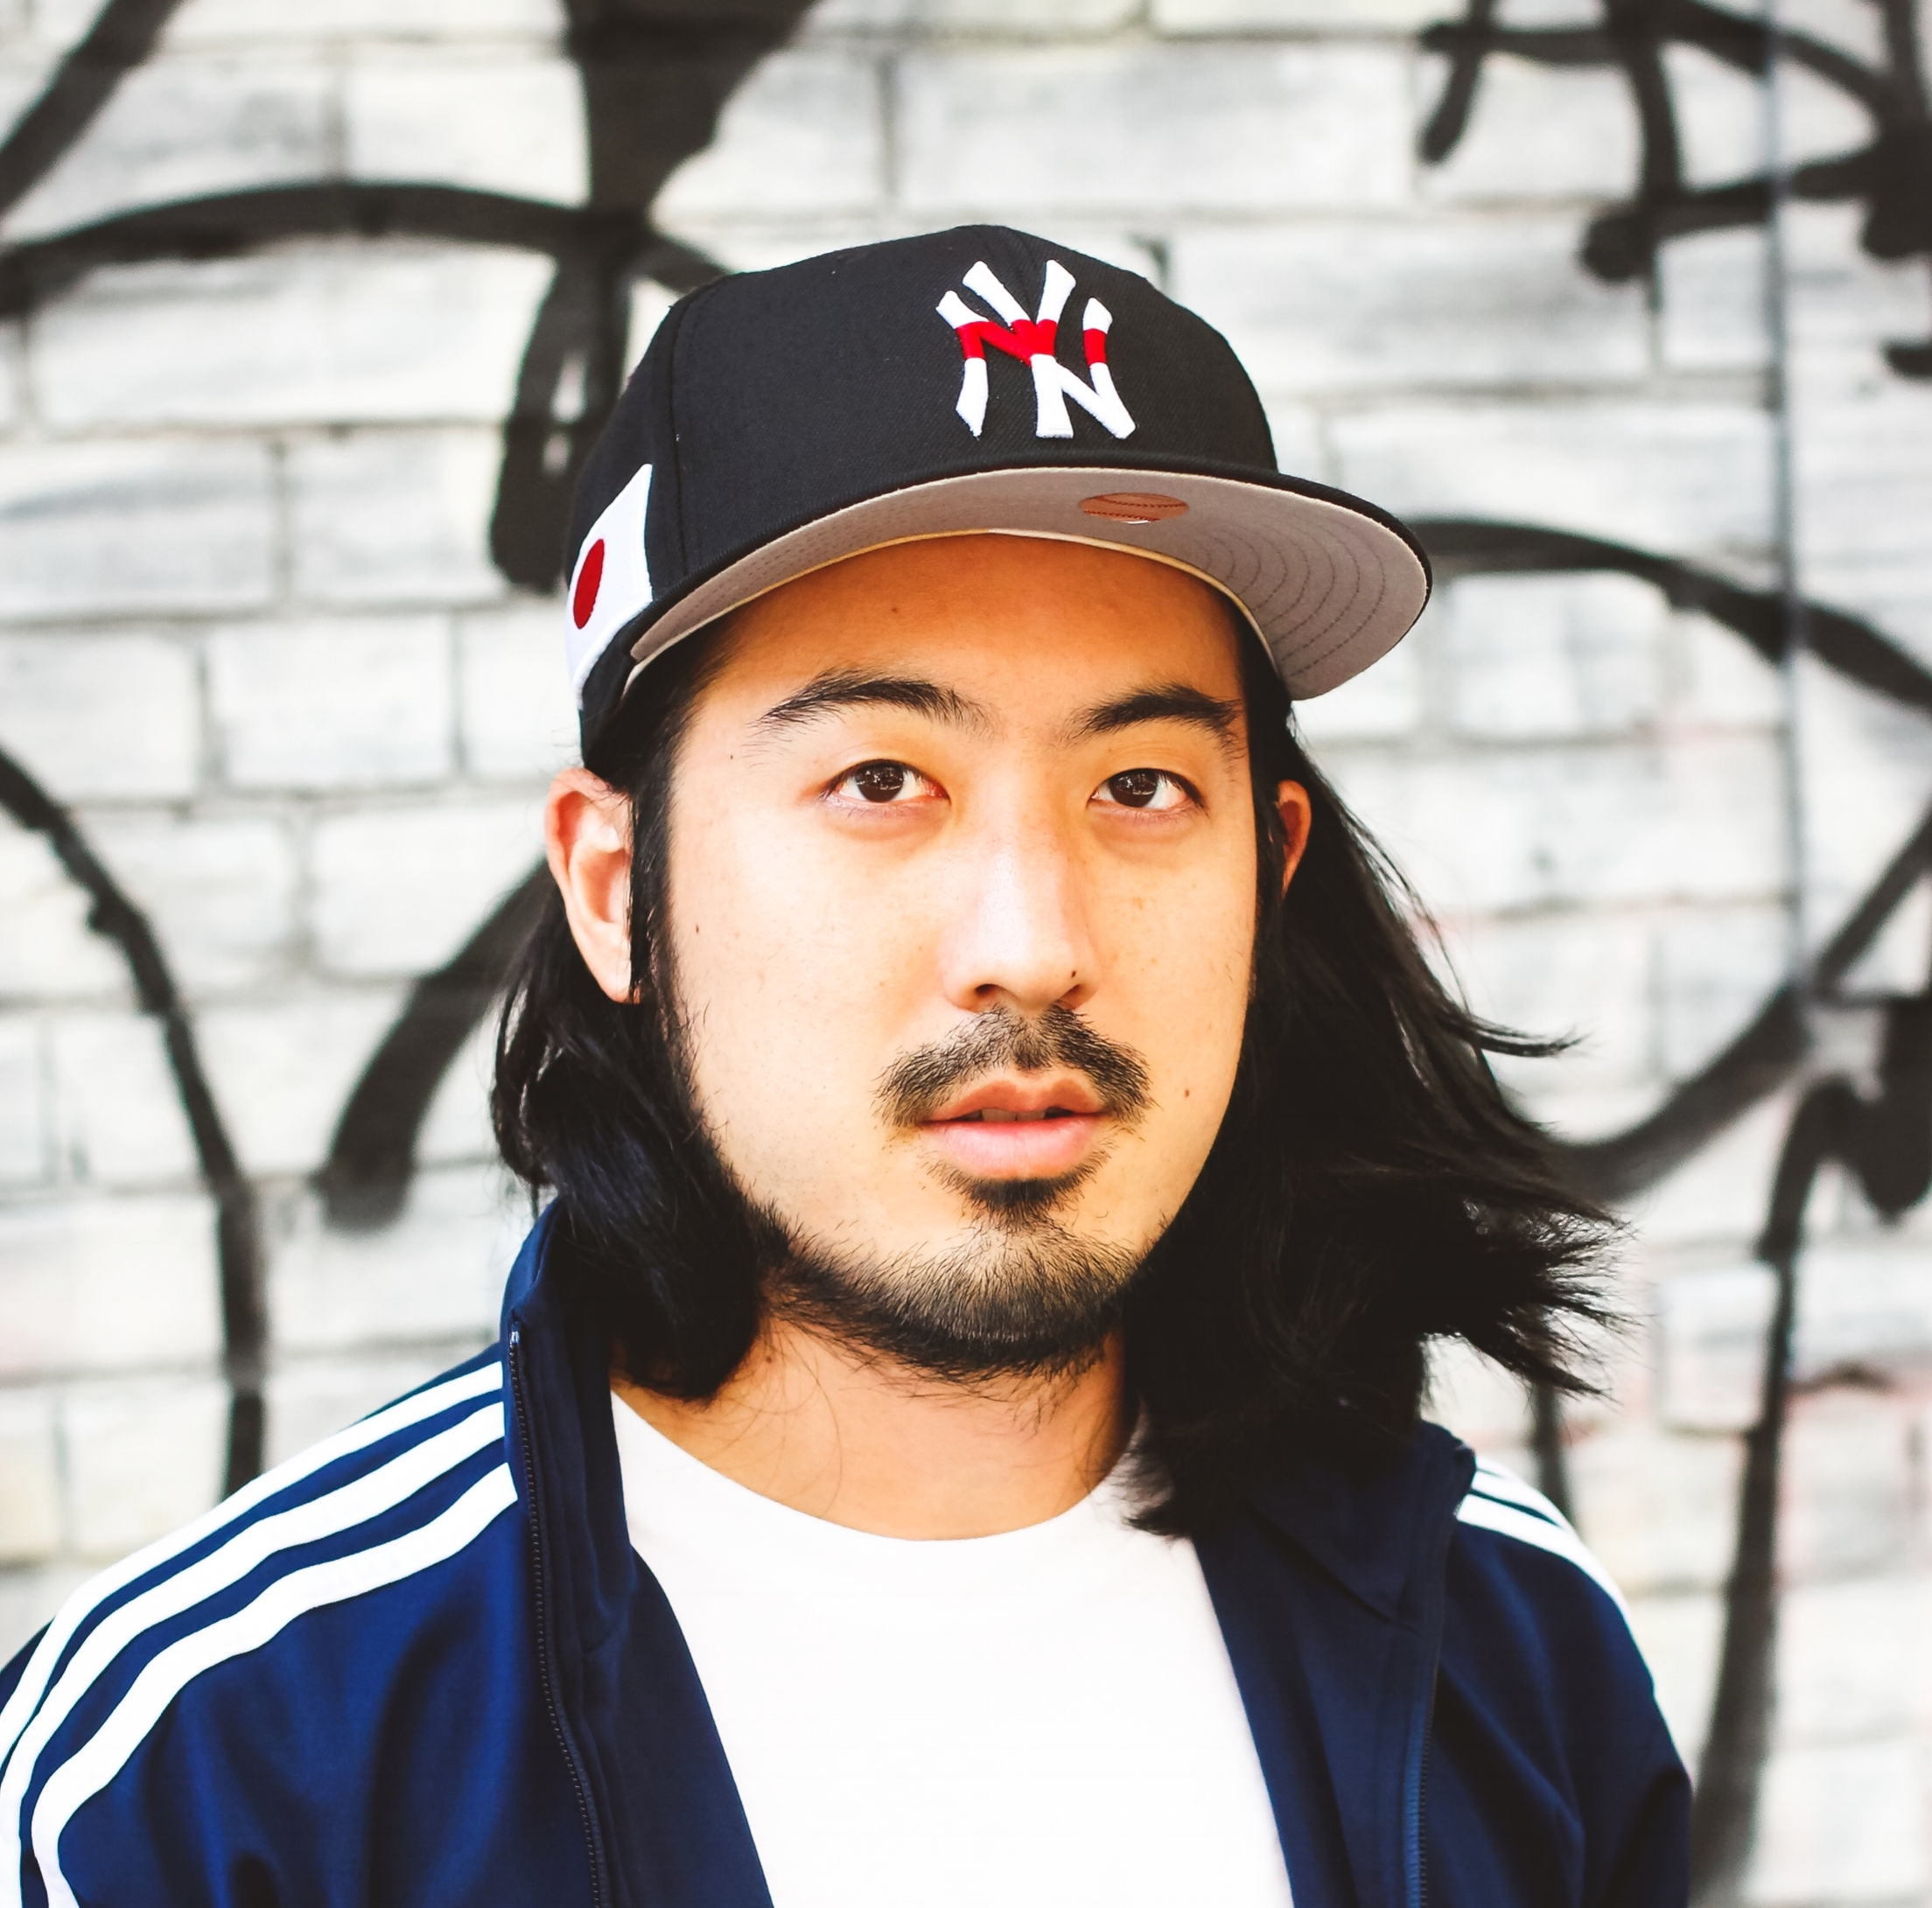 Ray Yamanouchi - was born in Queens, raised on Long Island, and received a BA in film and theatre from CUNY Hunter College in Manhattan. His plays include Tha Chink-Mart (PlayPenn 2018), Impact (Semi-finalist, National Playwrights Conference 2017), and The American Tradition (New Light New Voices Award 2018). He has developed work with WT Theatre, Mission to (dit)Mars (Propulsion Lab), The Blank Theatre, Rising Circle Theater Collective, Ars Nova (Play Group), and Playwrights' Center (Core Writer). You can find him online @NotoriousYAMs or at RAYYAMS.COM.